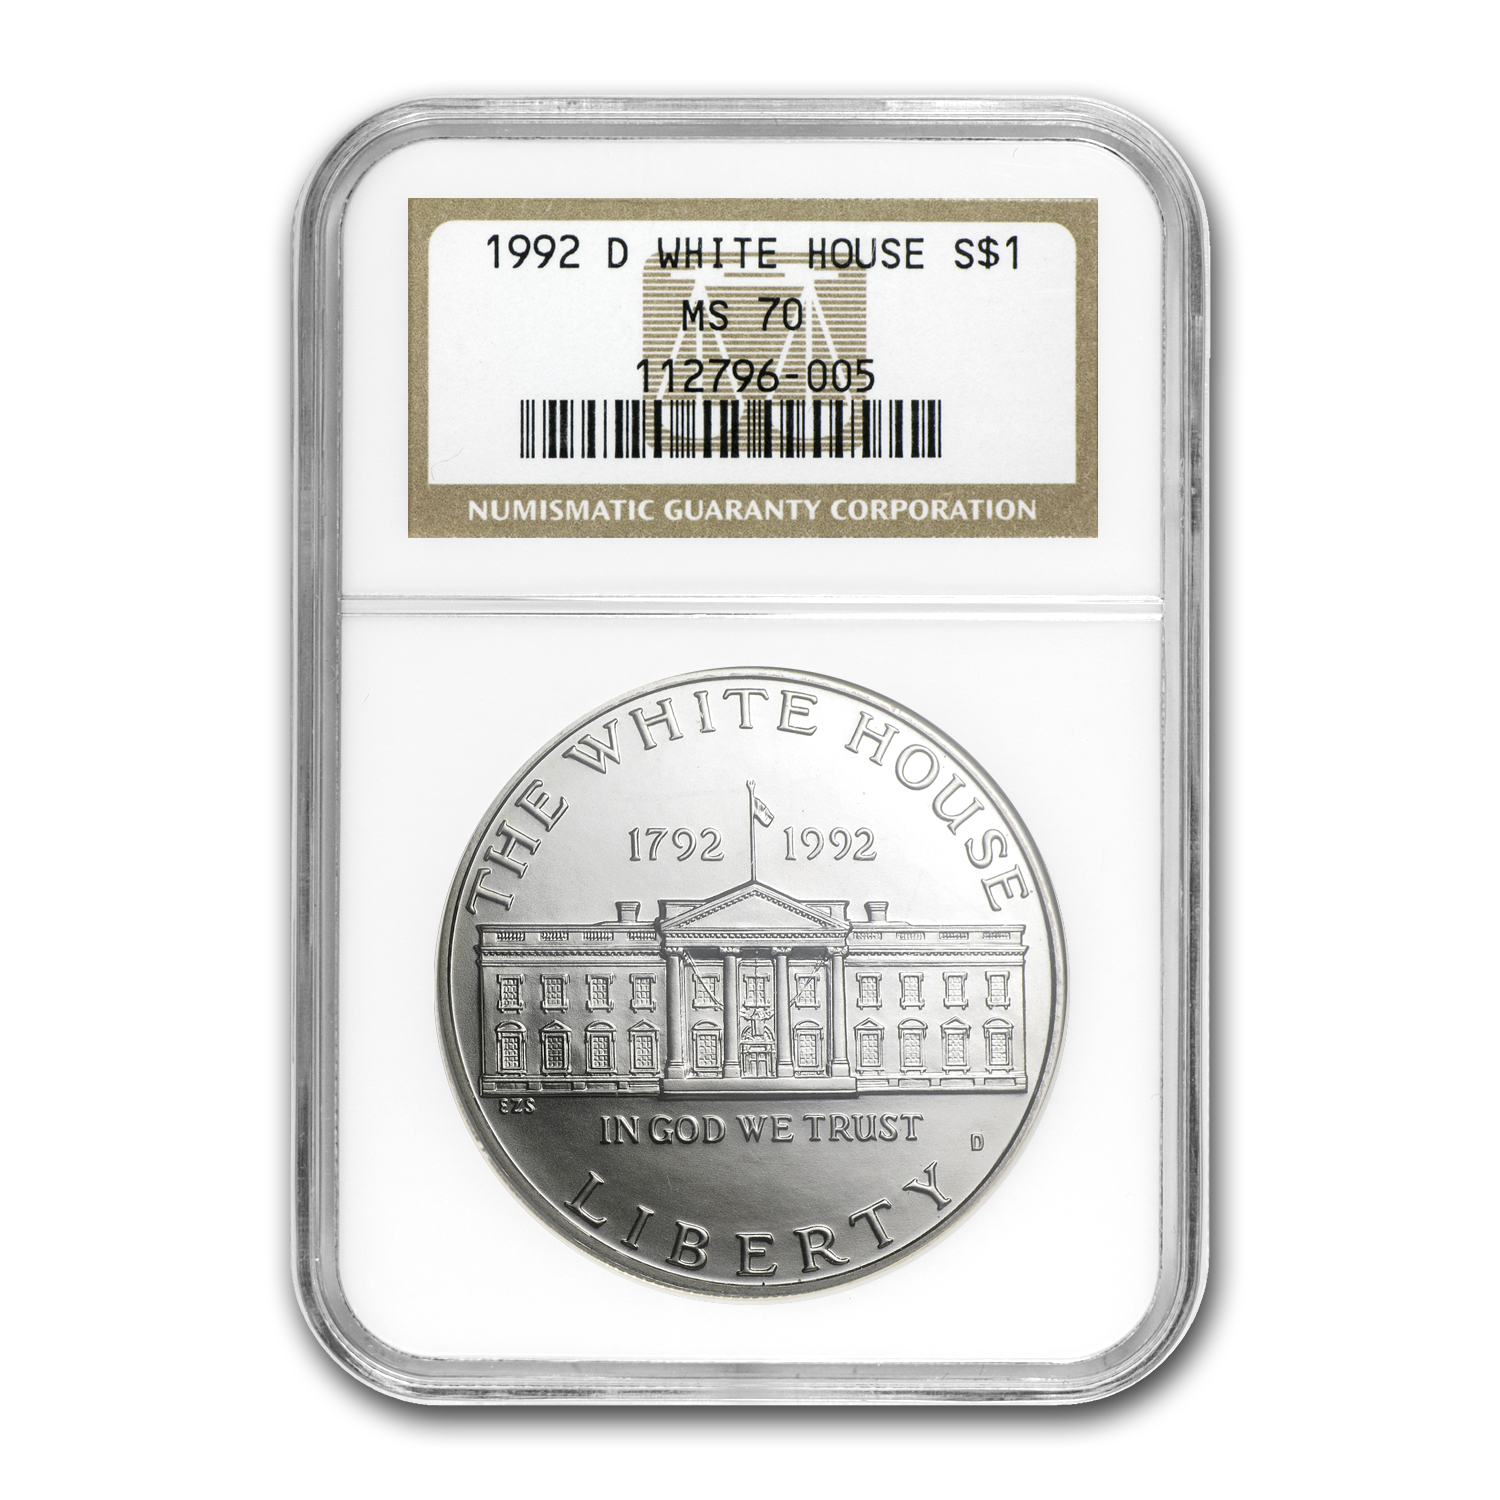 1992-D White House $1 Silver Commemorative MS-70 NGC